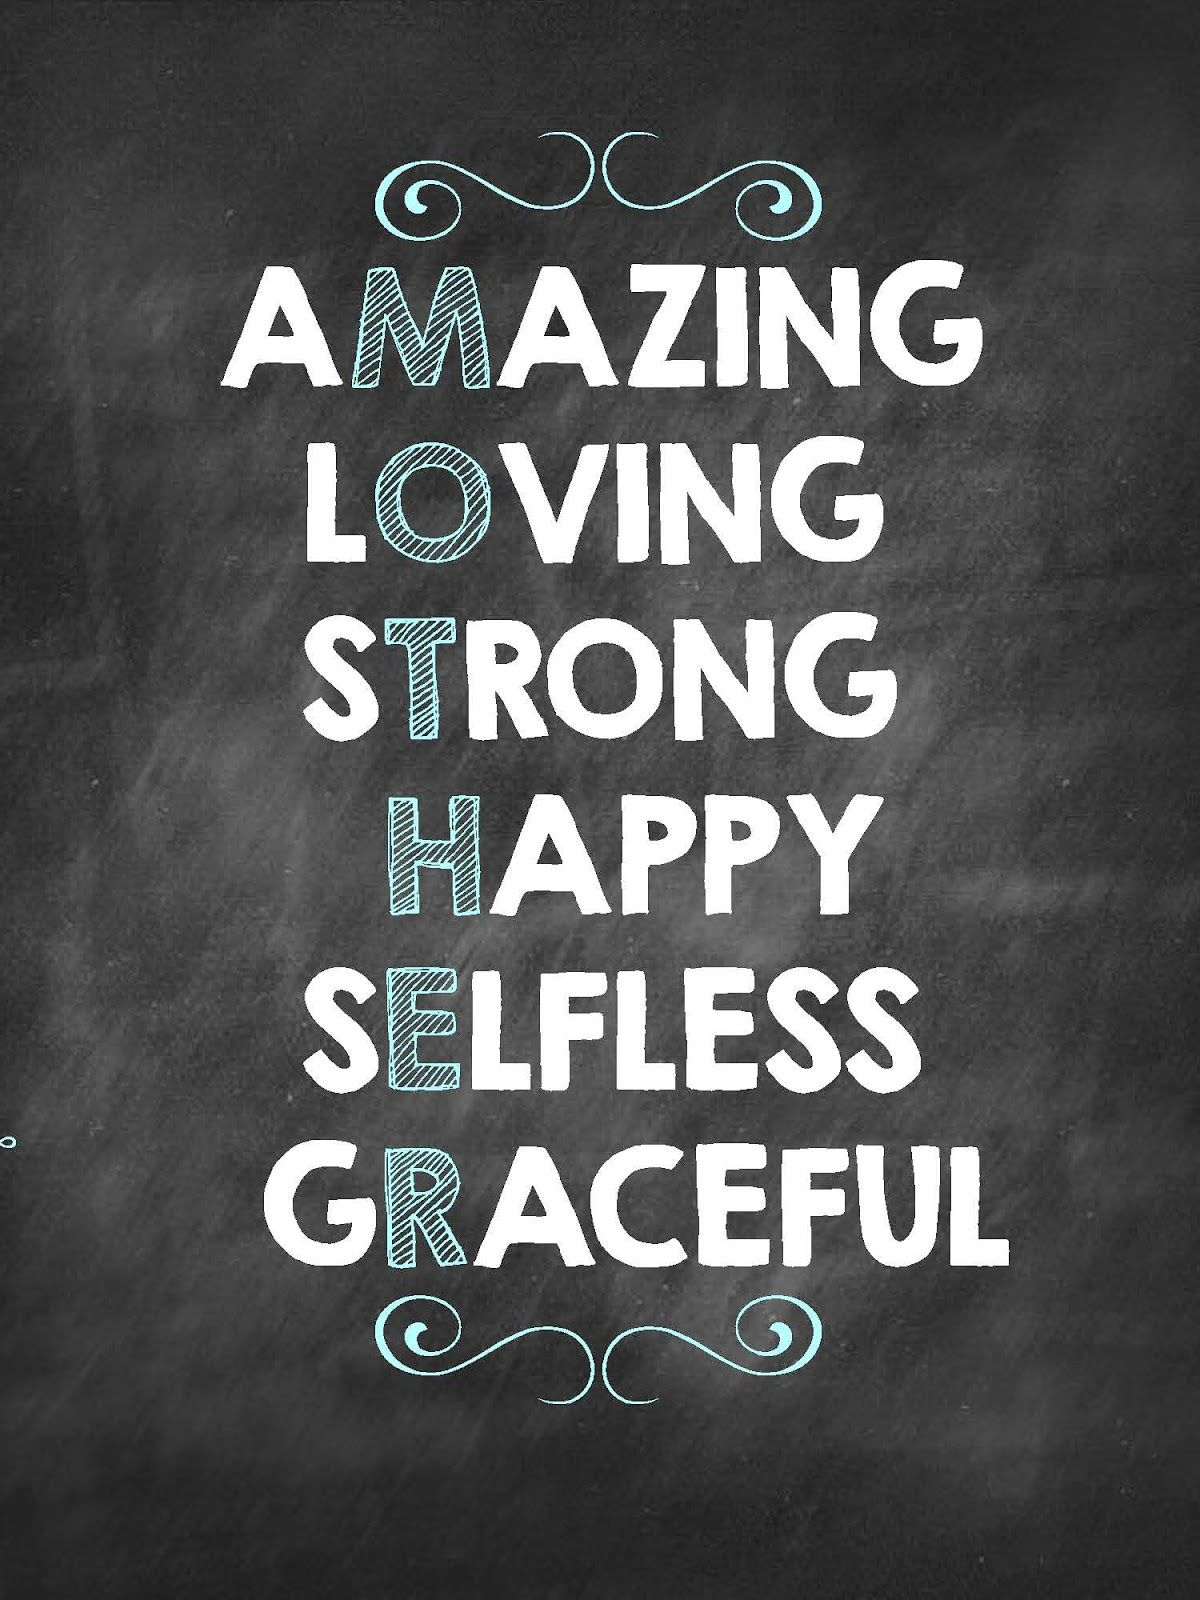 Mothers Day Quotes Pleasing Amazing Loving Strong Happy Selfless Gracefulthat's What A